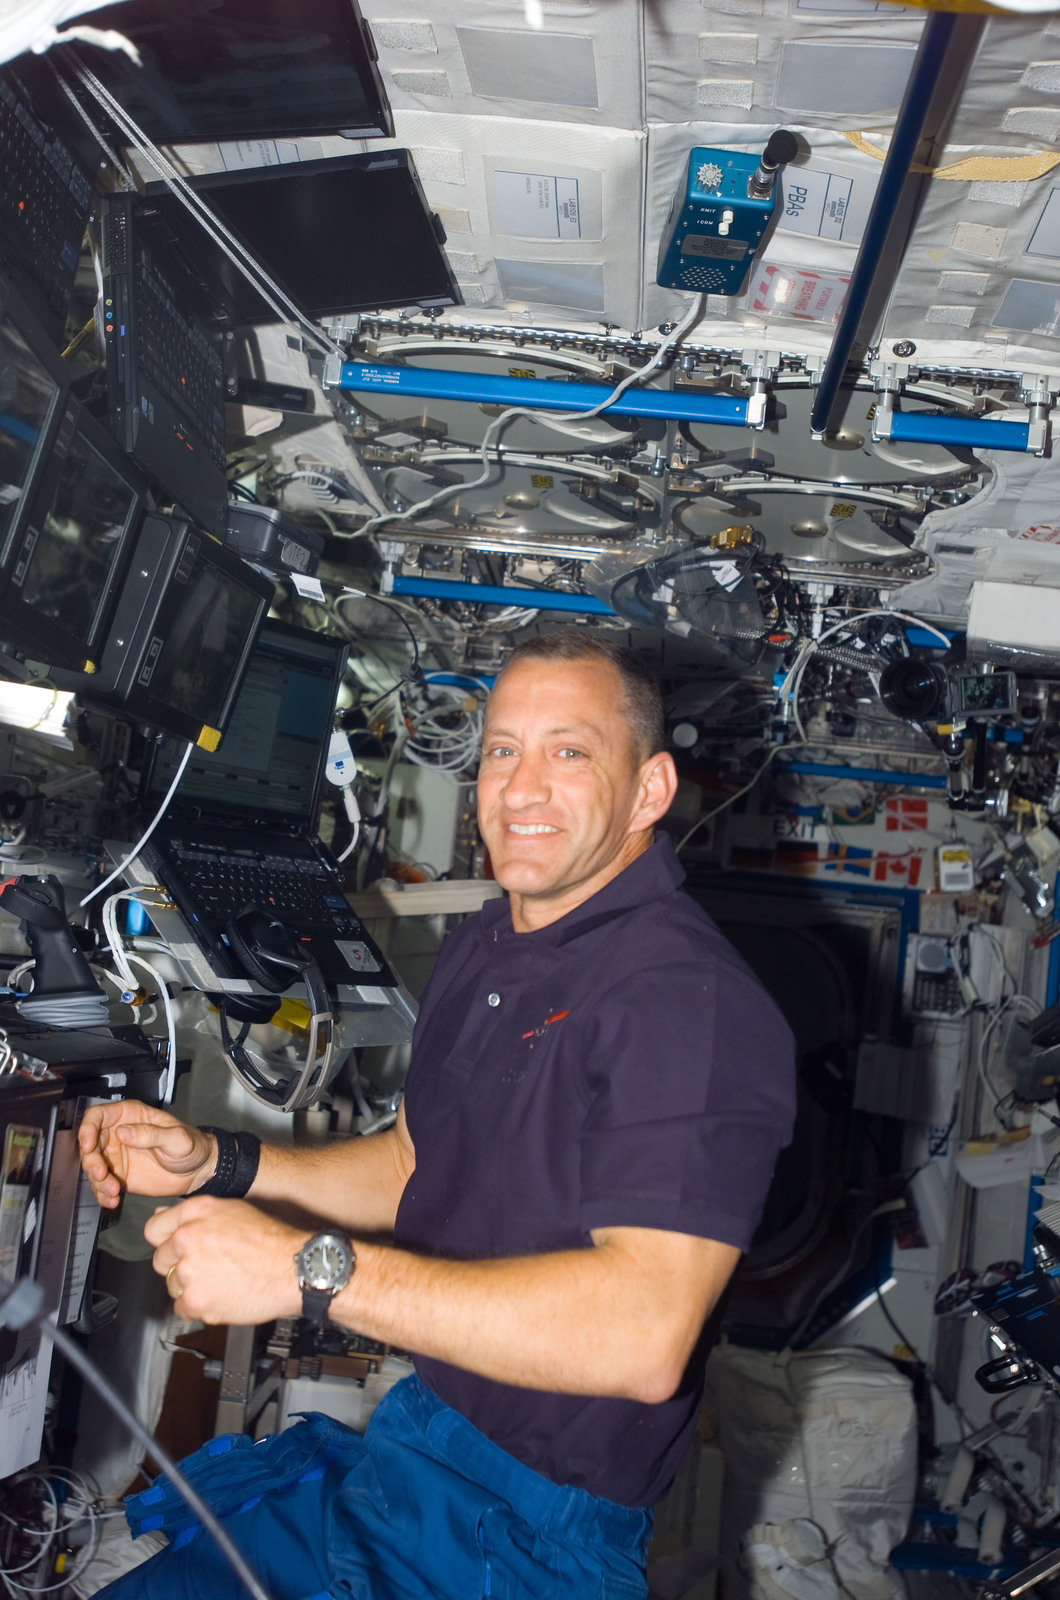 S118E06877 - STS-118 - View of Hobaugh in the US Lab during STS-118/Expedition 15 Joint Operations